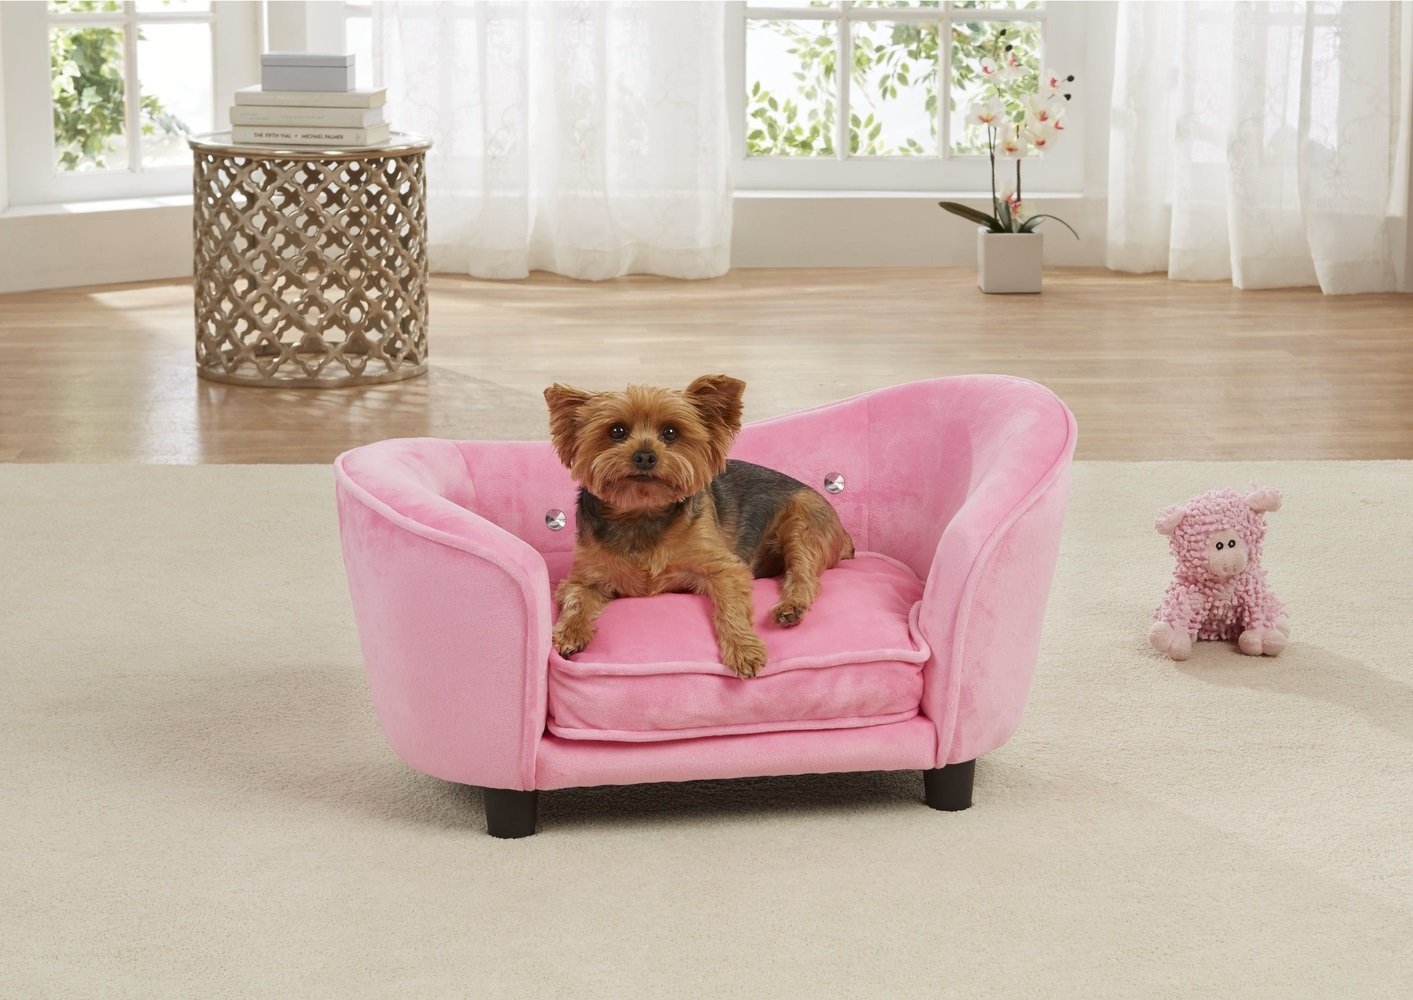 Enchanted Home Pet Ultra Plush Snuggle Bed in Light Pink by Enchanted Home Pet